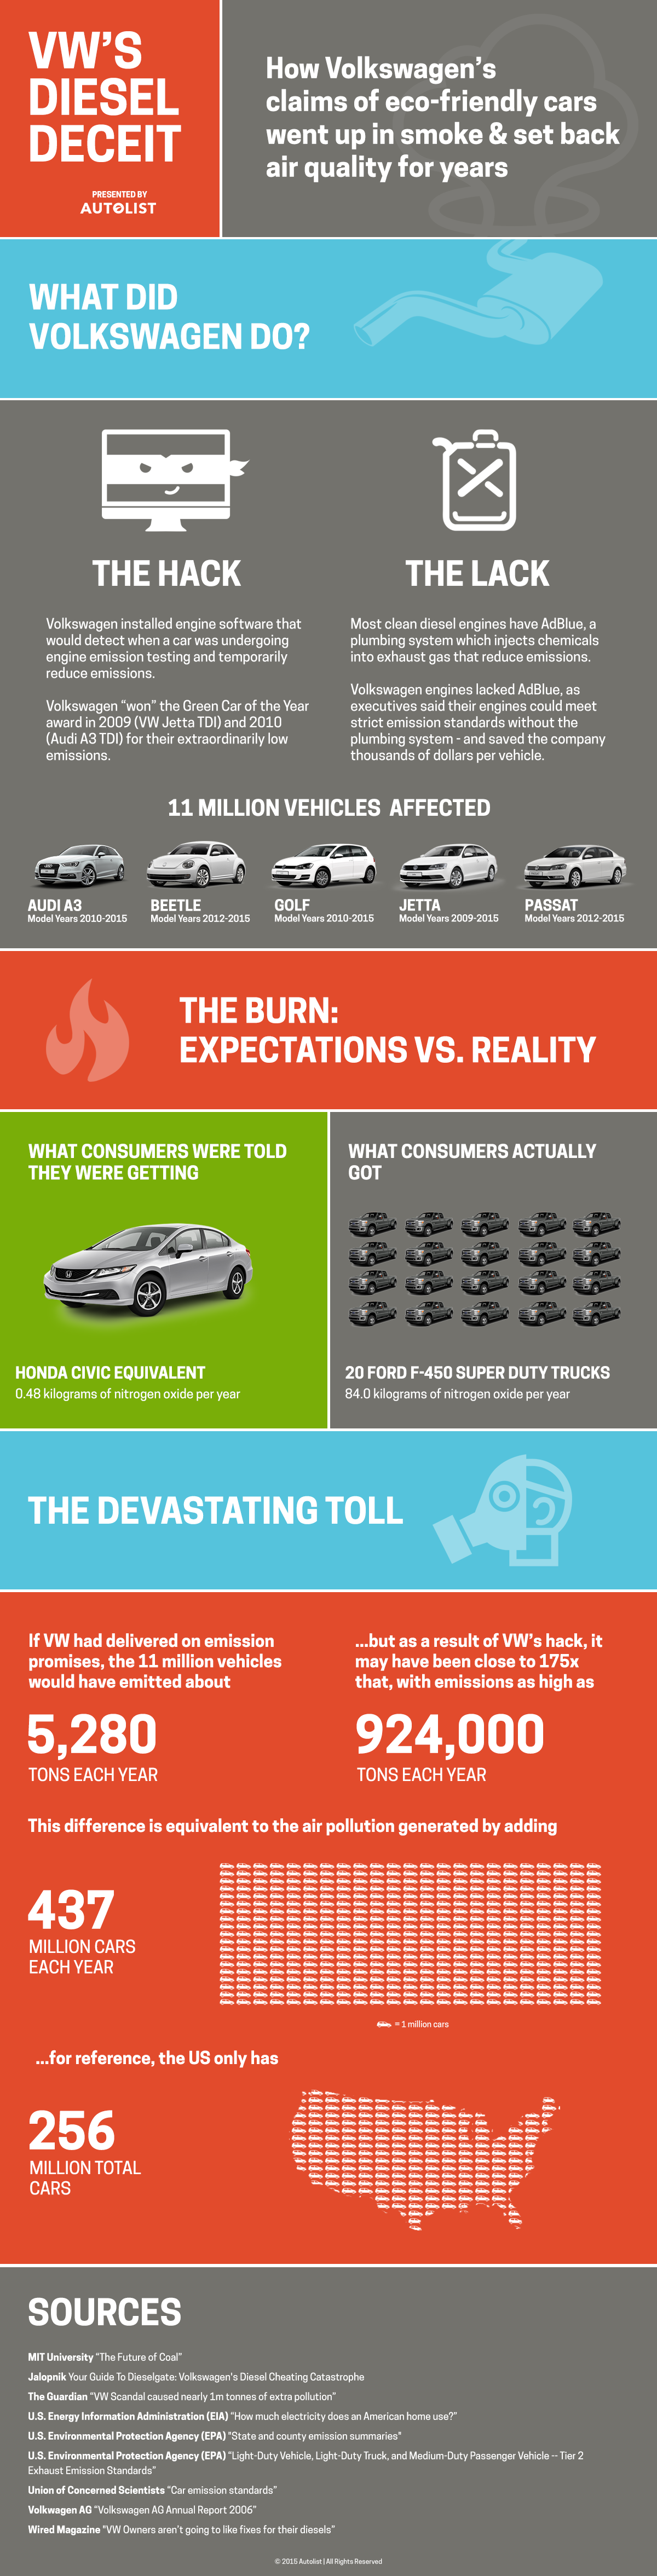 Volkswagenscandal Infographic Talking About The Vw